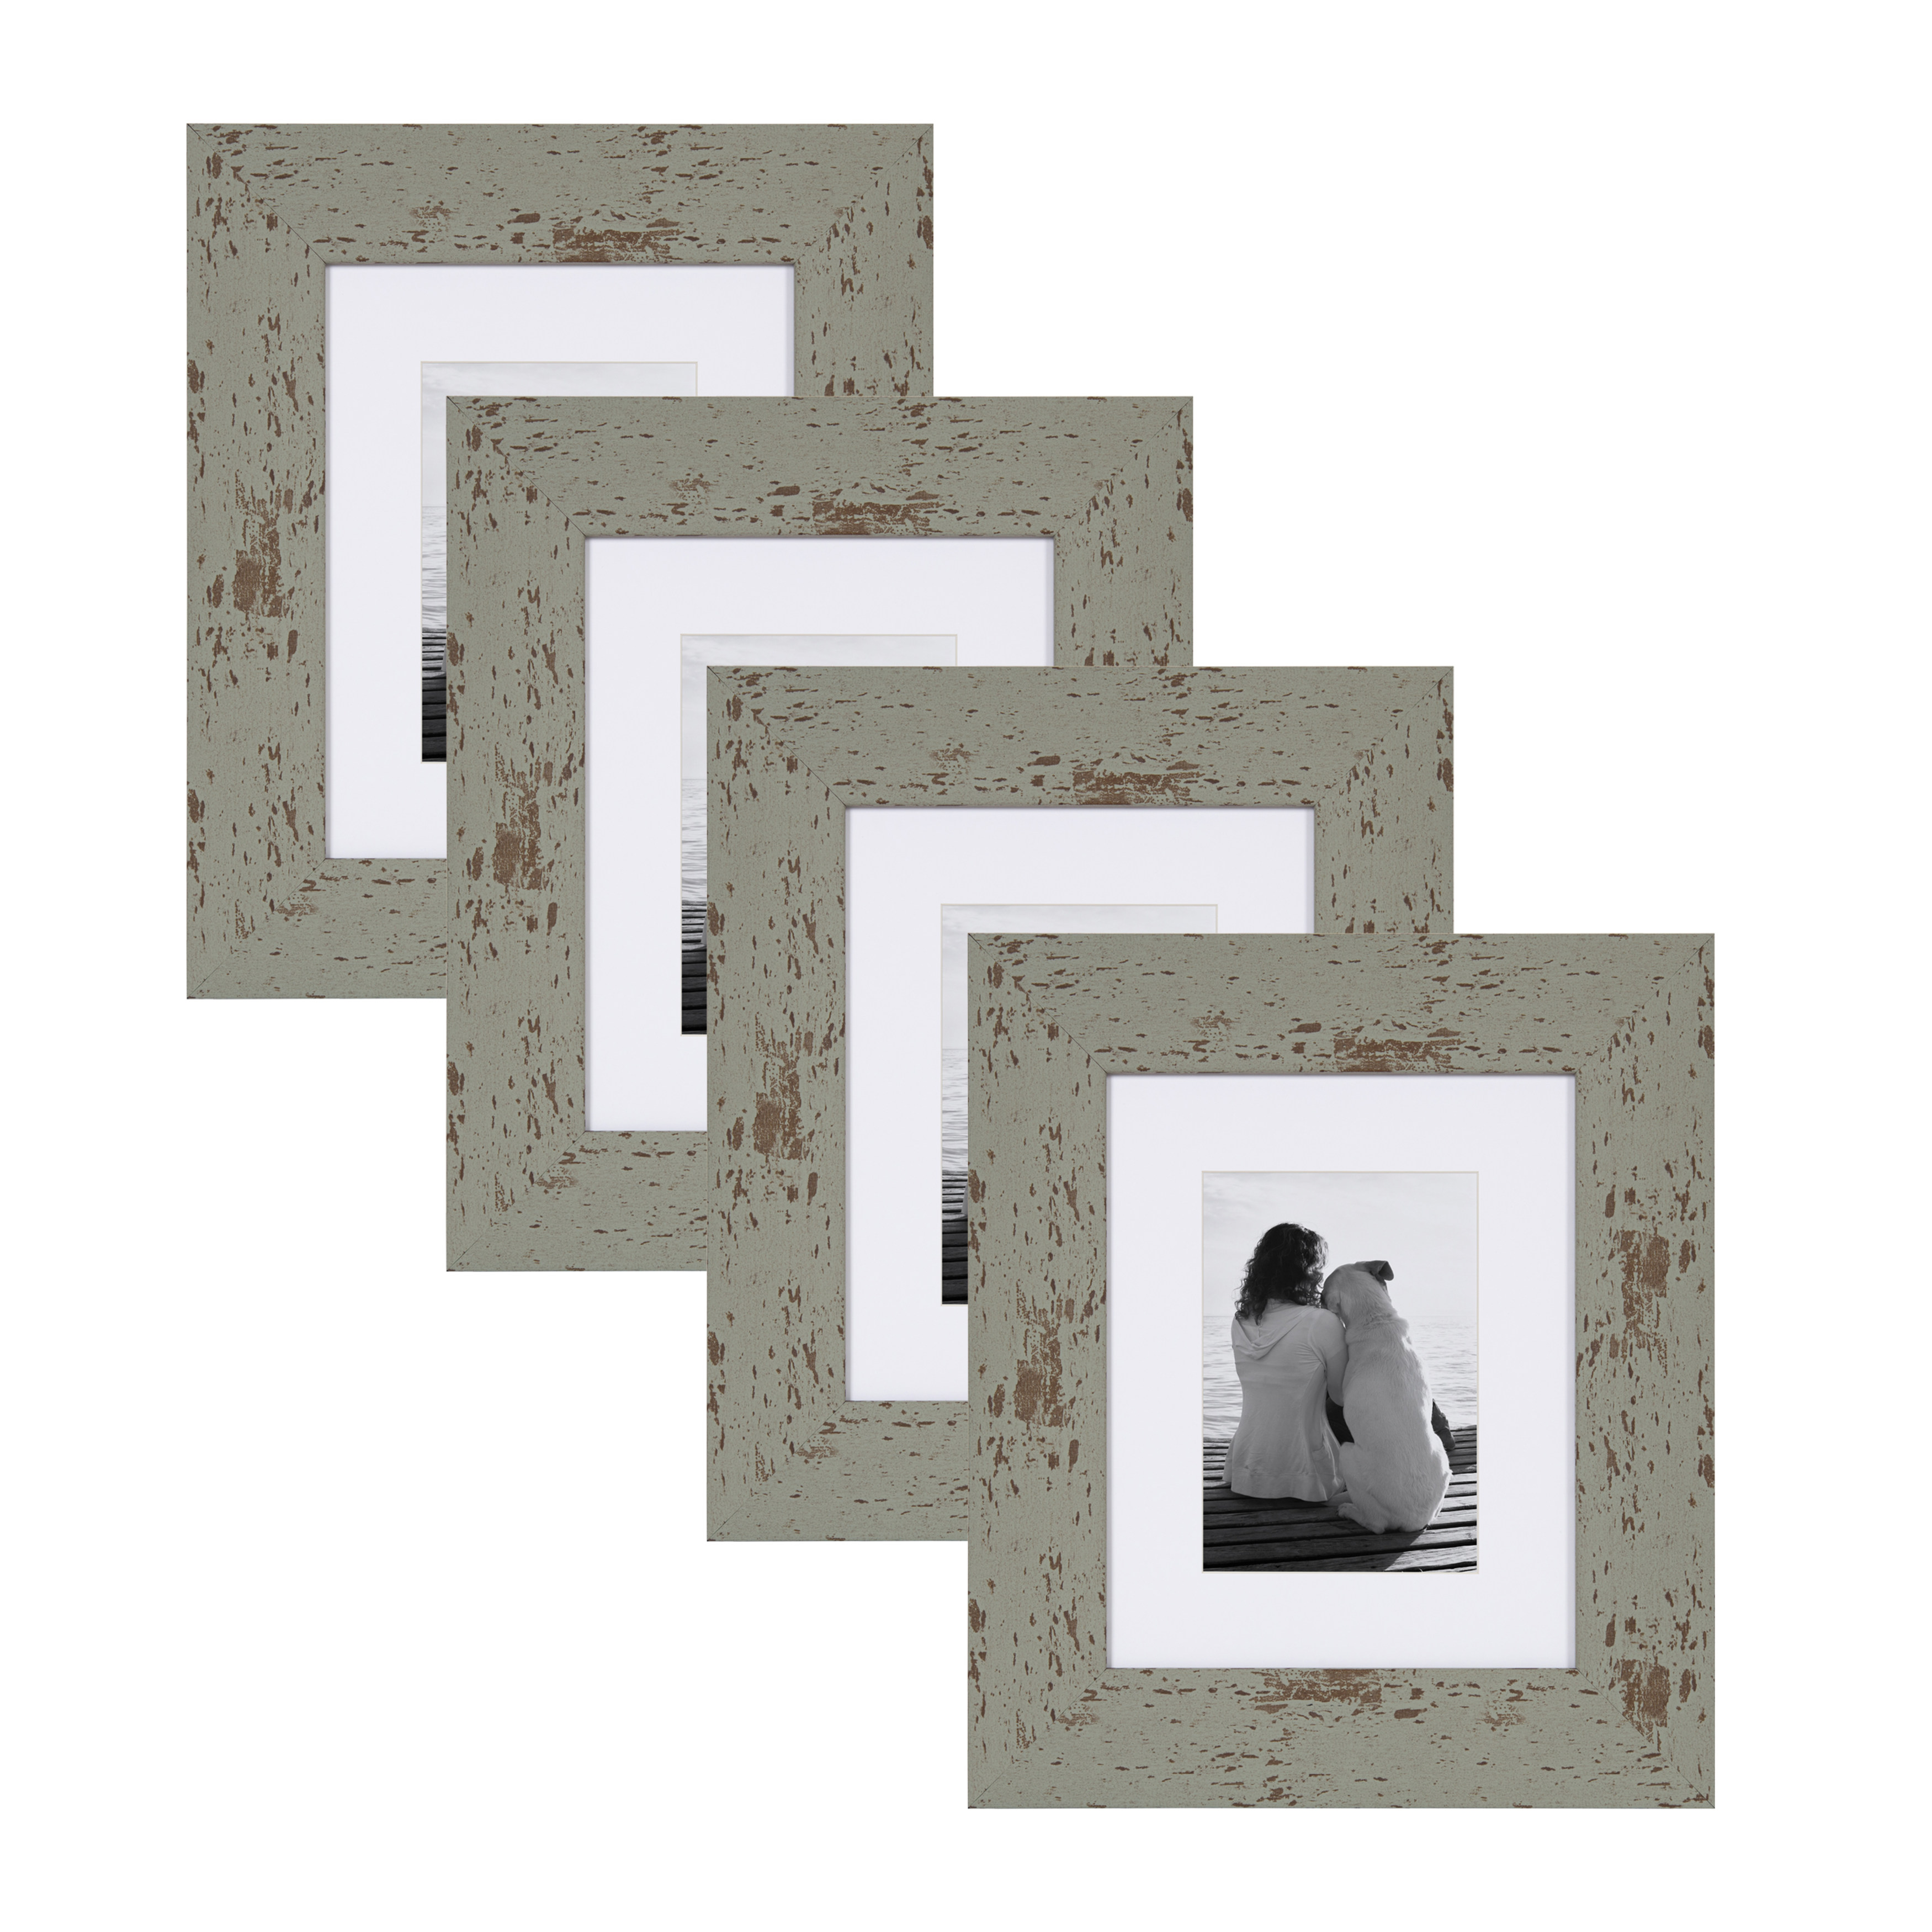 DesignOvation - Nor Rustic Wall Hanging or Table Standing Decorative Picture Frame Set with Off-White Mats, Distressed Teal, 8x10 matted to 5x7, Pack of 4